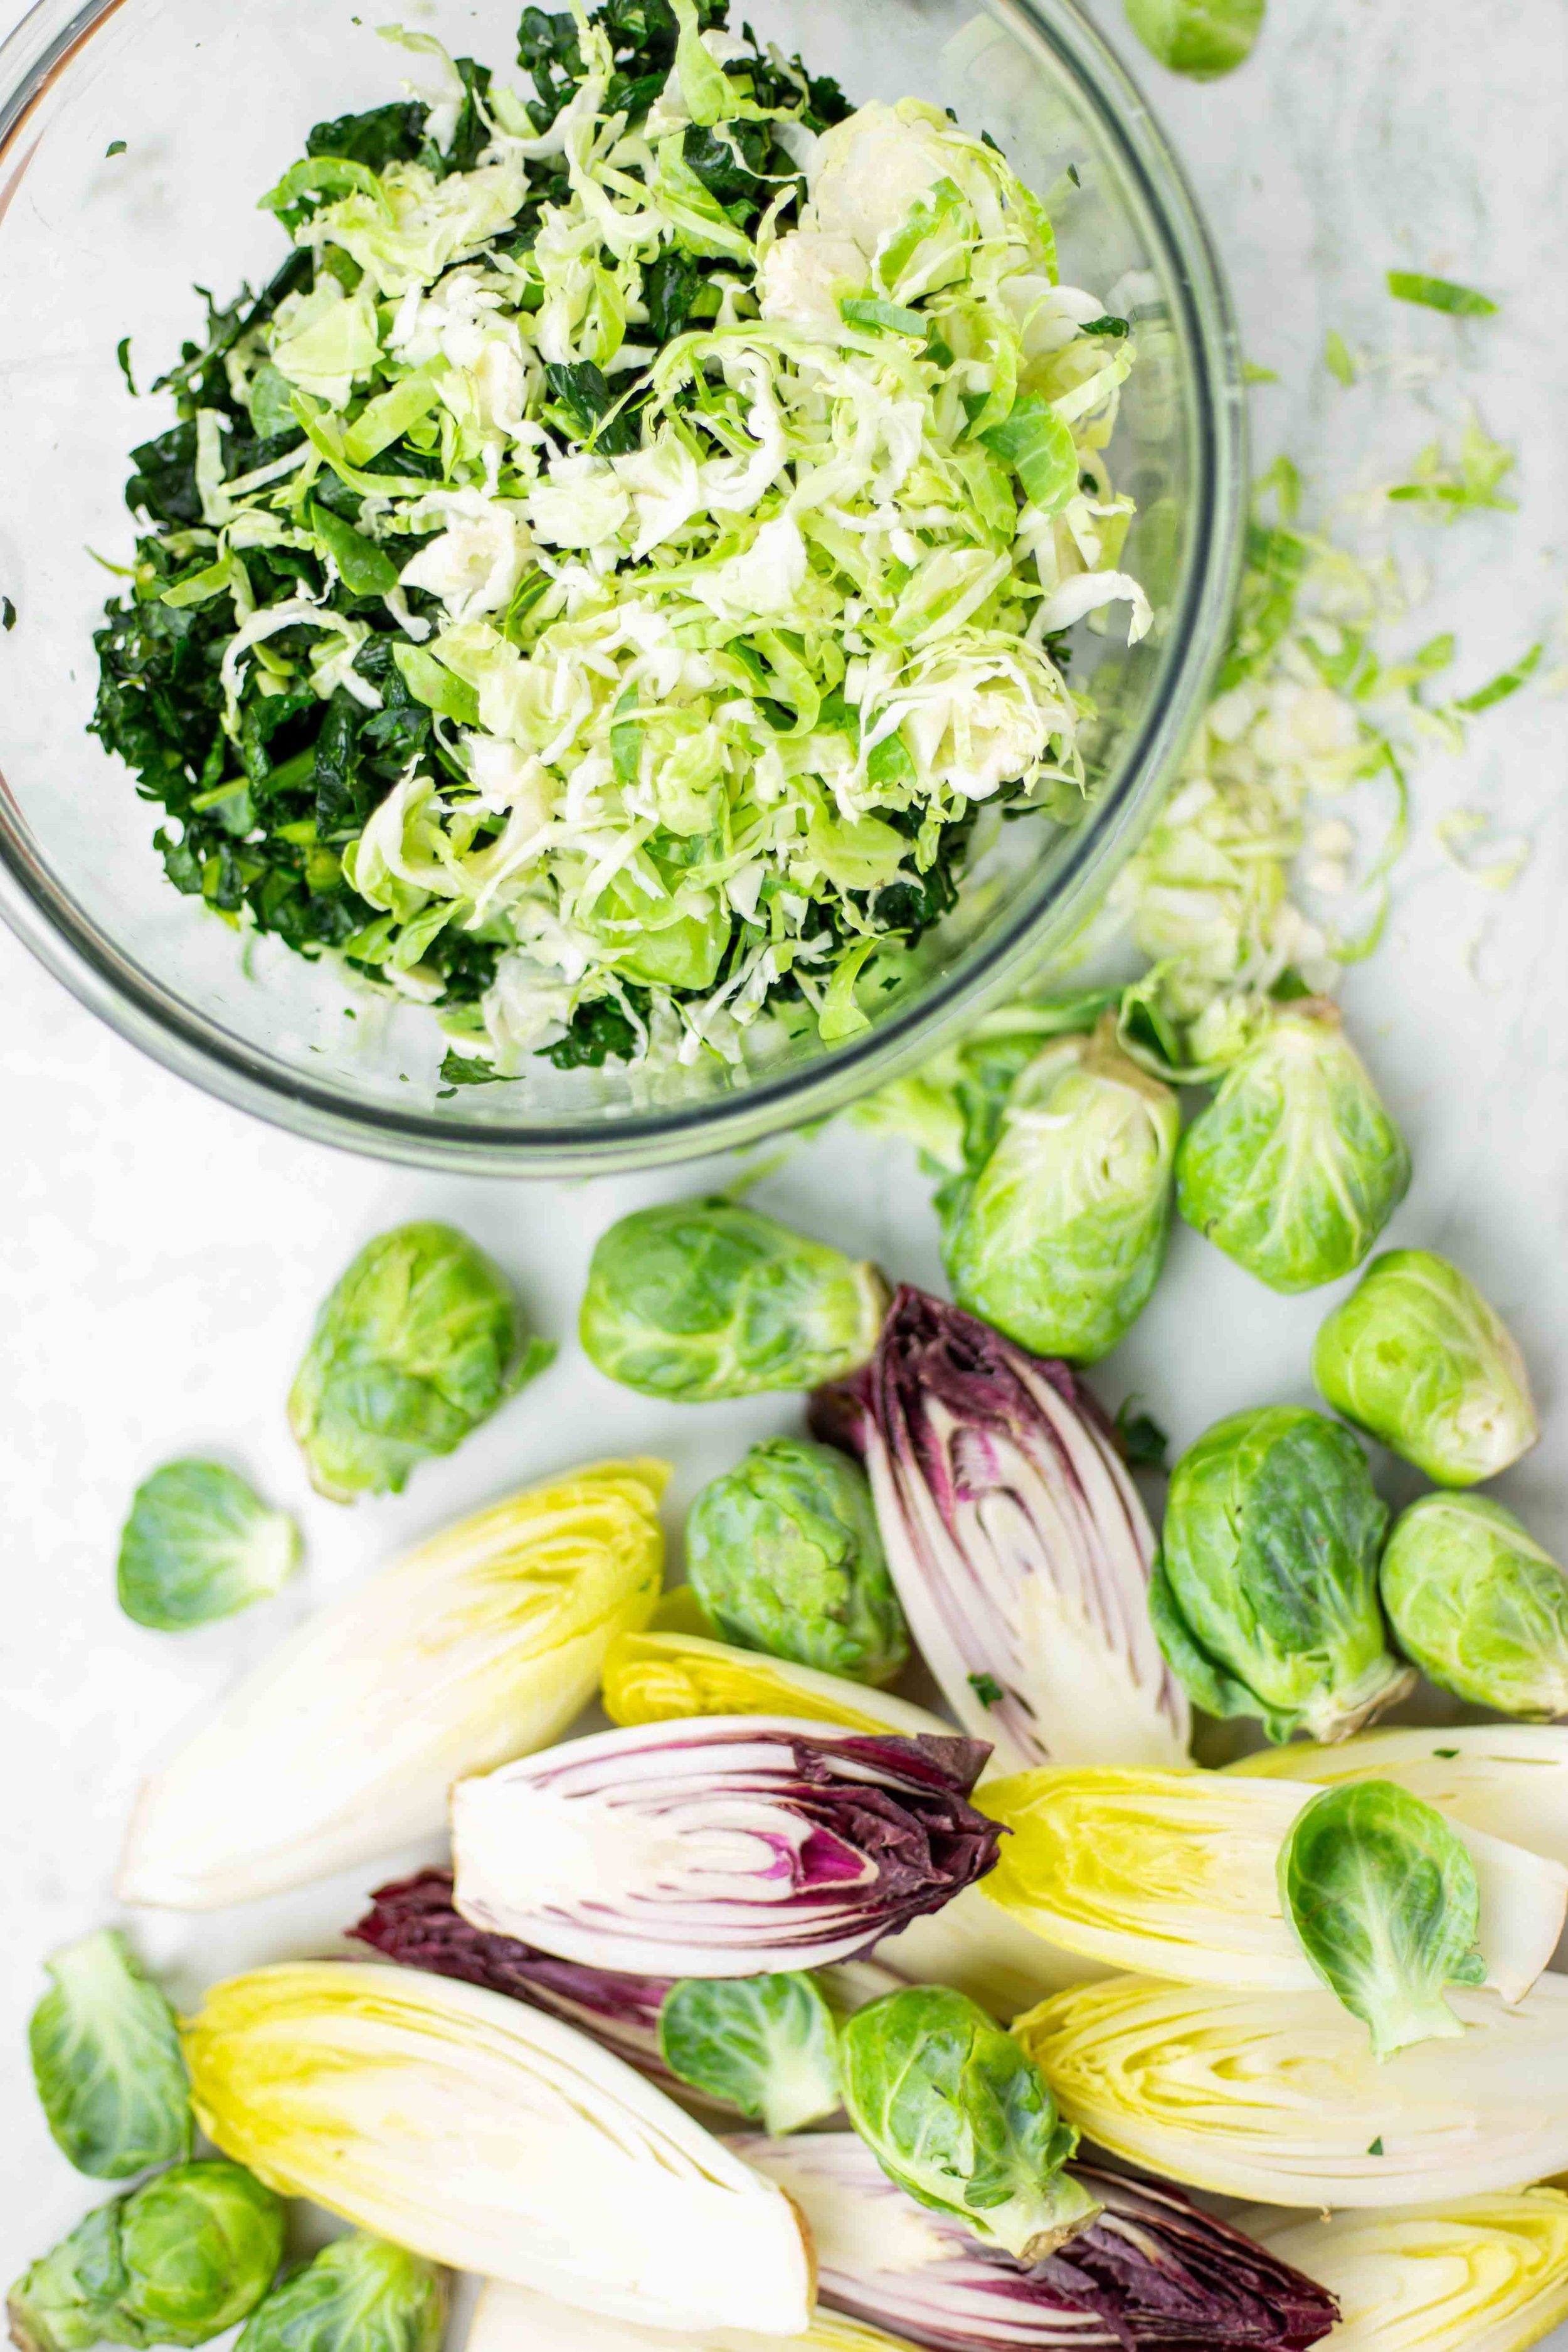 Prebiotic Foods | Health Benefits of Brussels Sprouts & Shaved Brussels Sprouts Salad Recipe